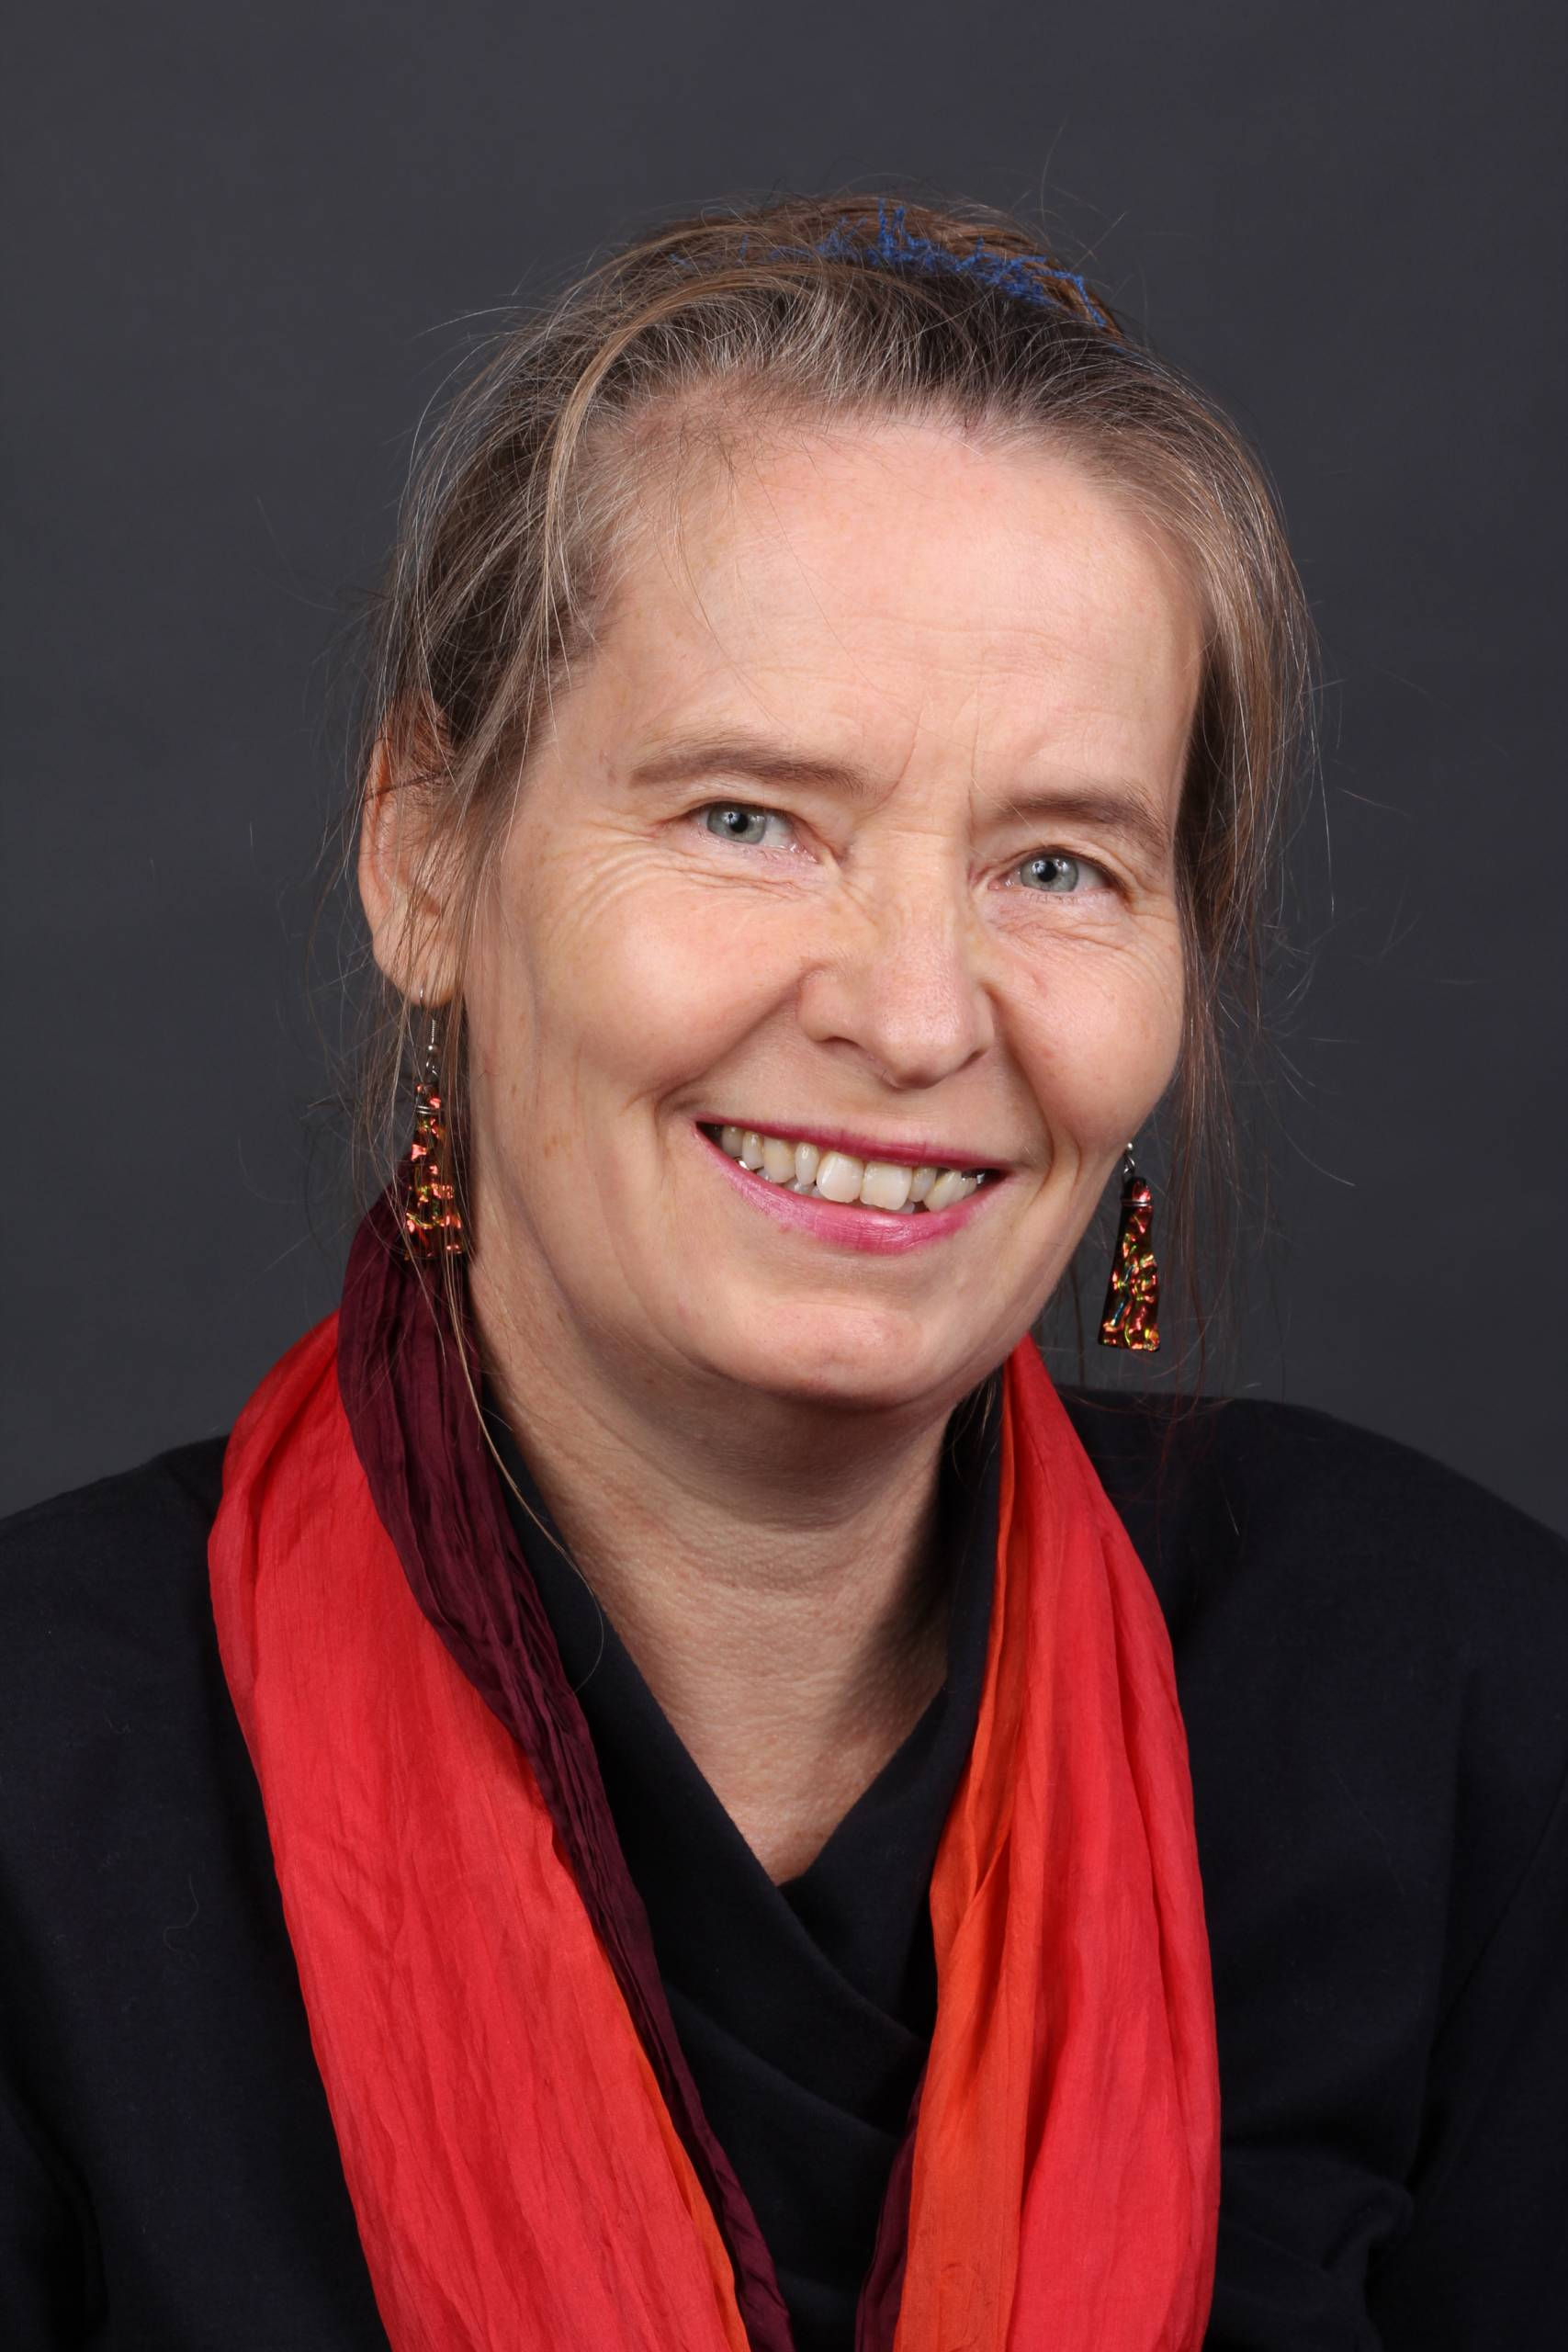 Headshot of Dorothee Ostmeier, woman wearing a black shirt and red scarf